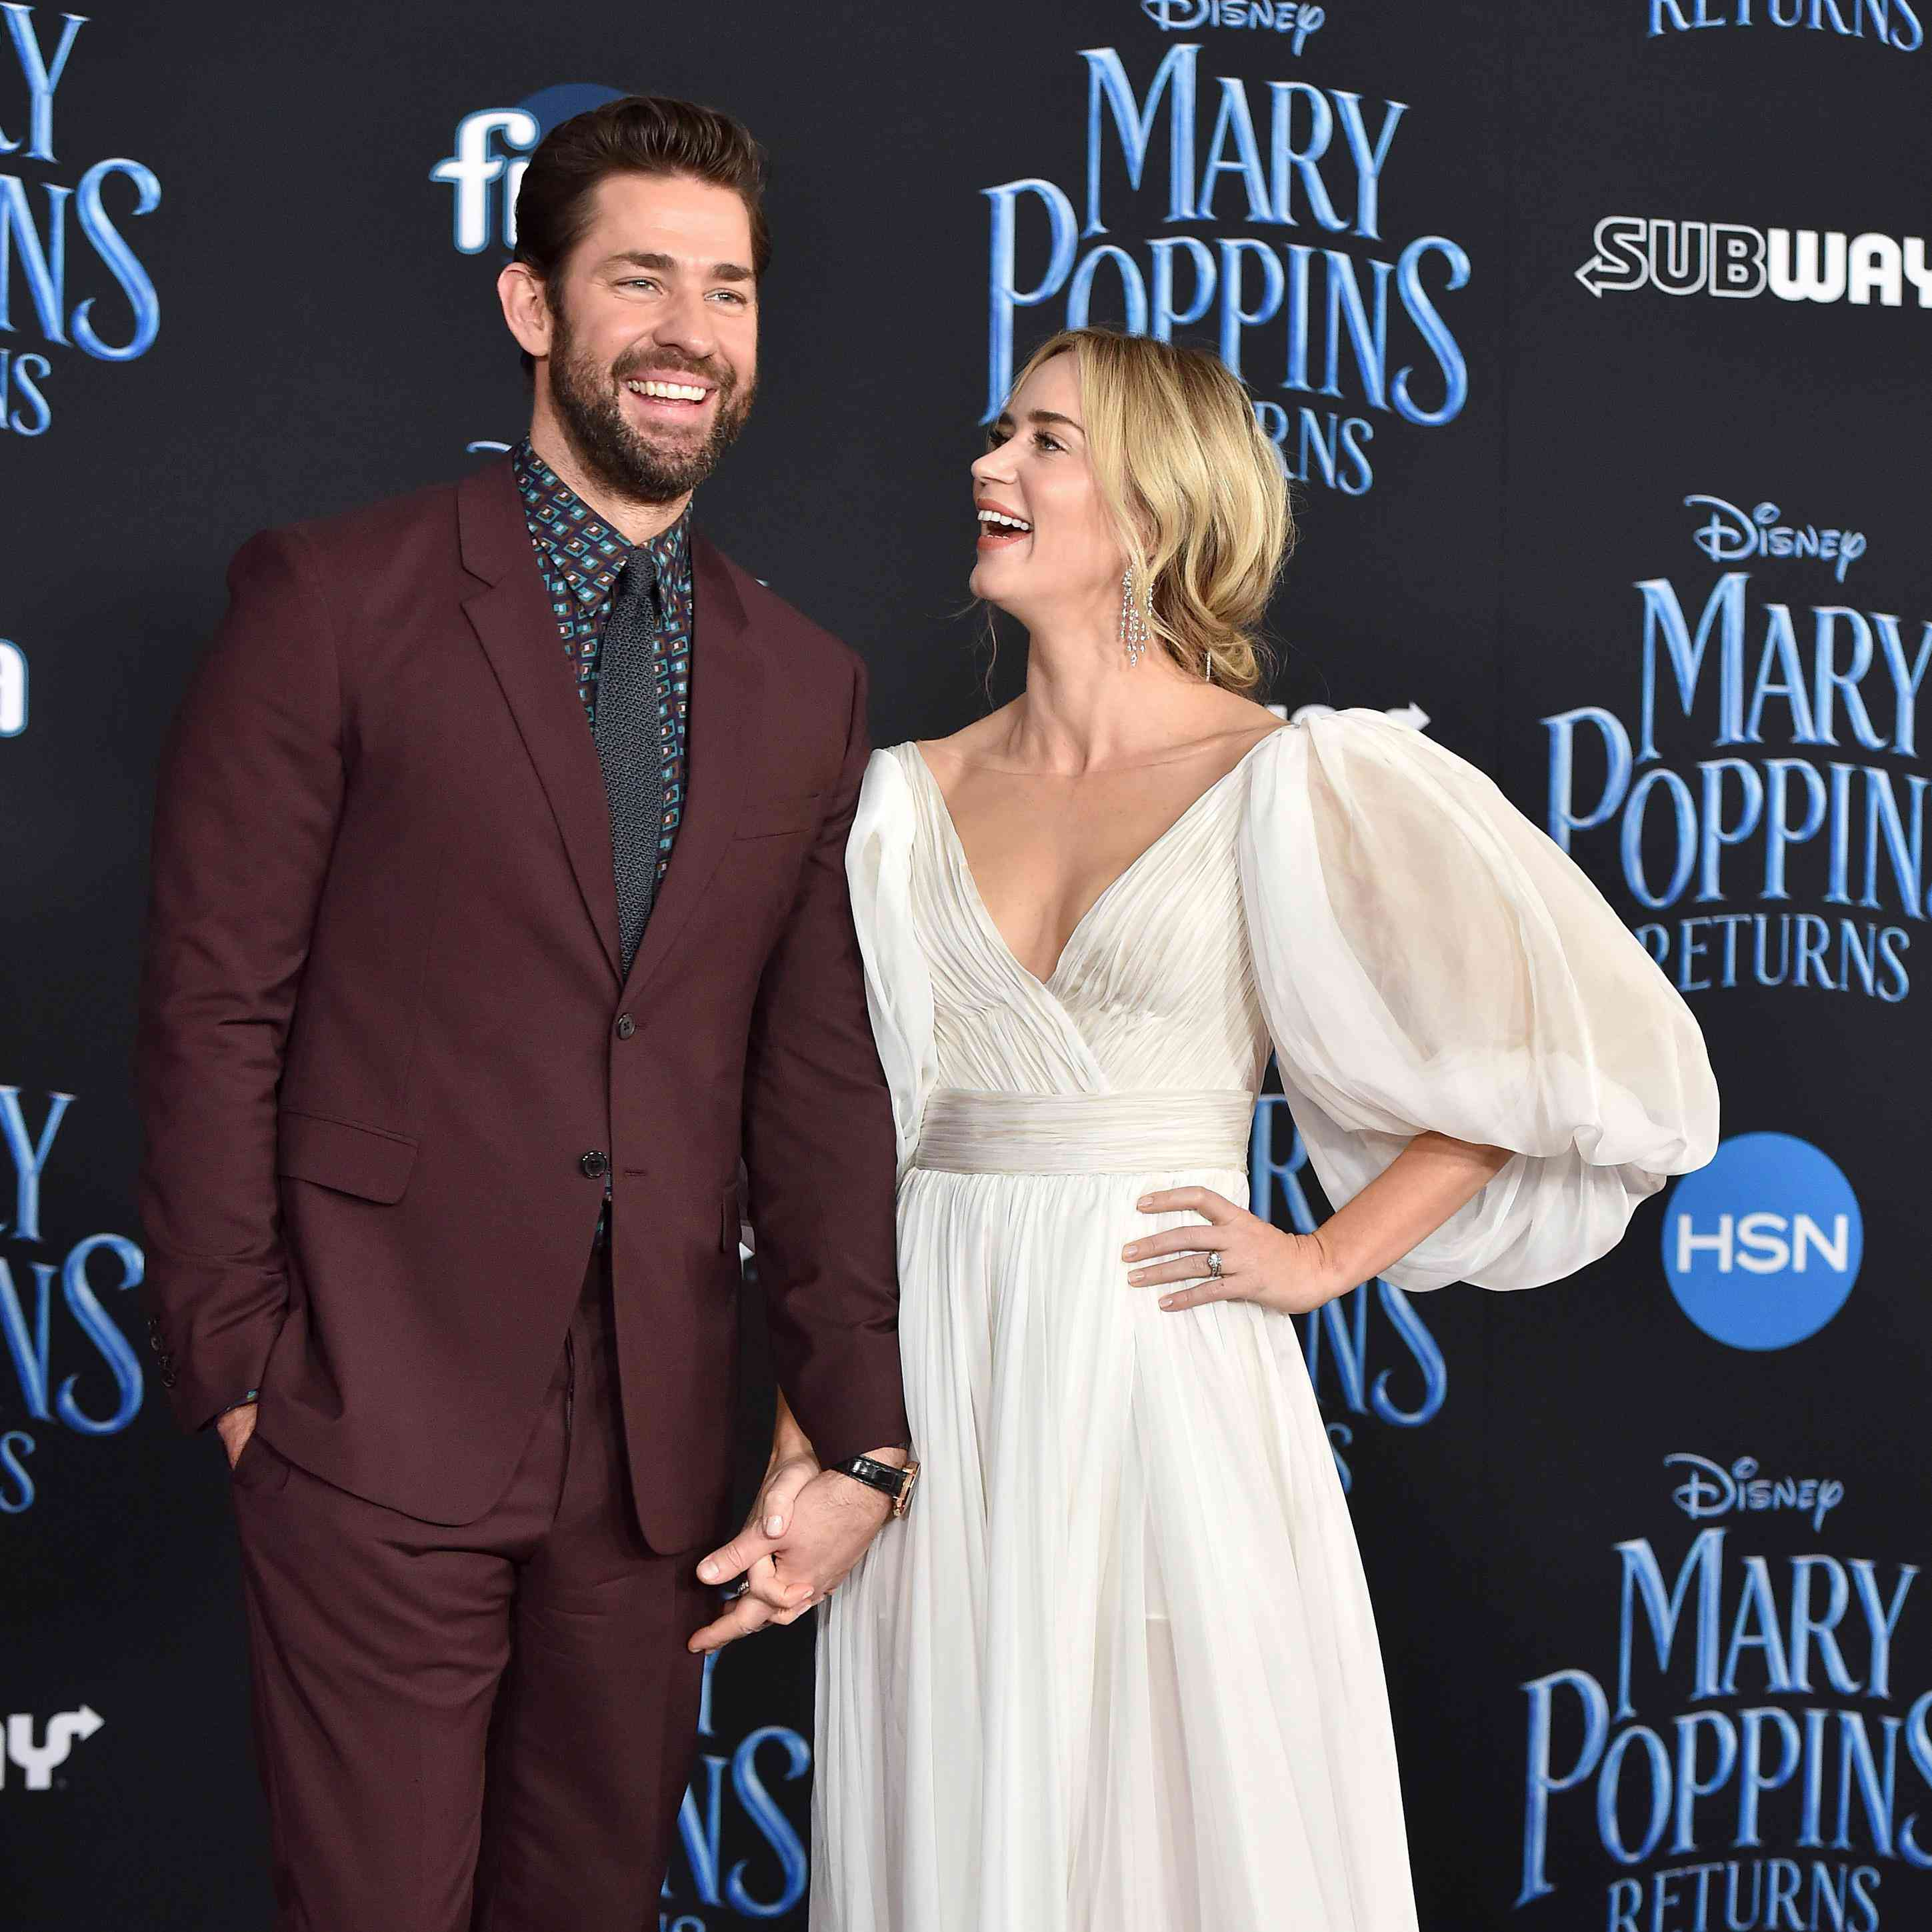 John Krasinski Emily Blunt Wedding.Emily Blunt Opens Up About Her Marriage With John Krasinski